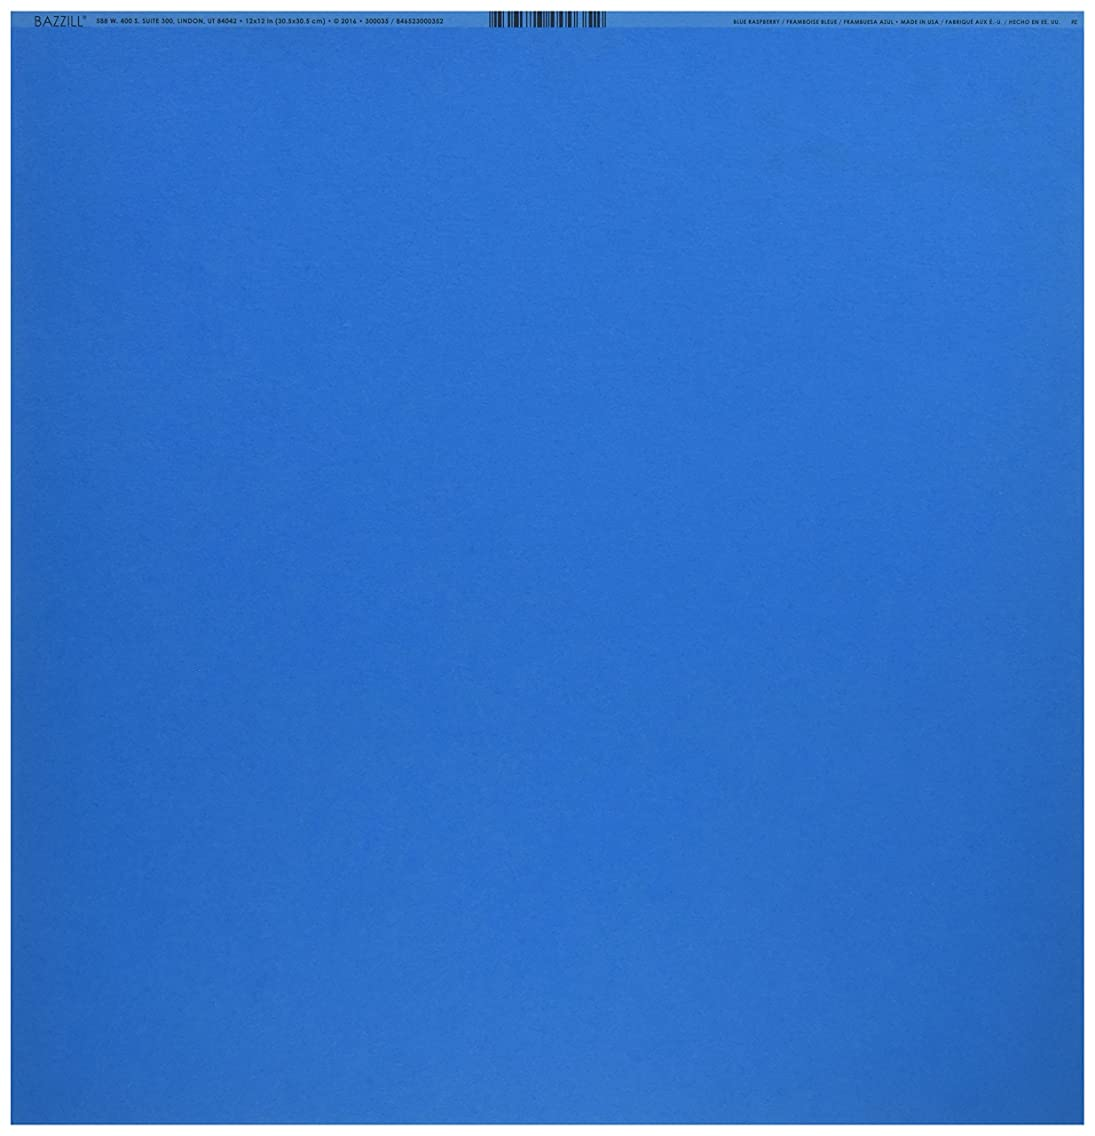 American Crafts Bazzill Basics 12 x 12 Cardstock Pack of 25 Smoothies Blue Raspberry